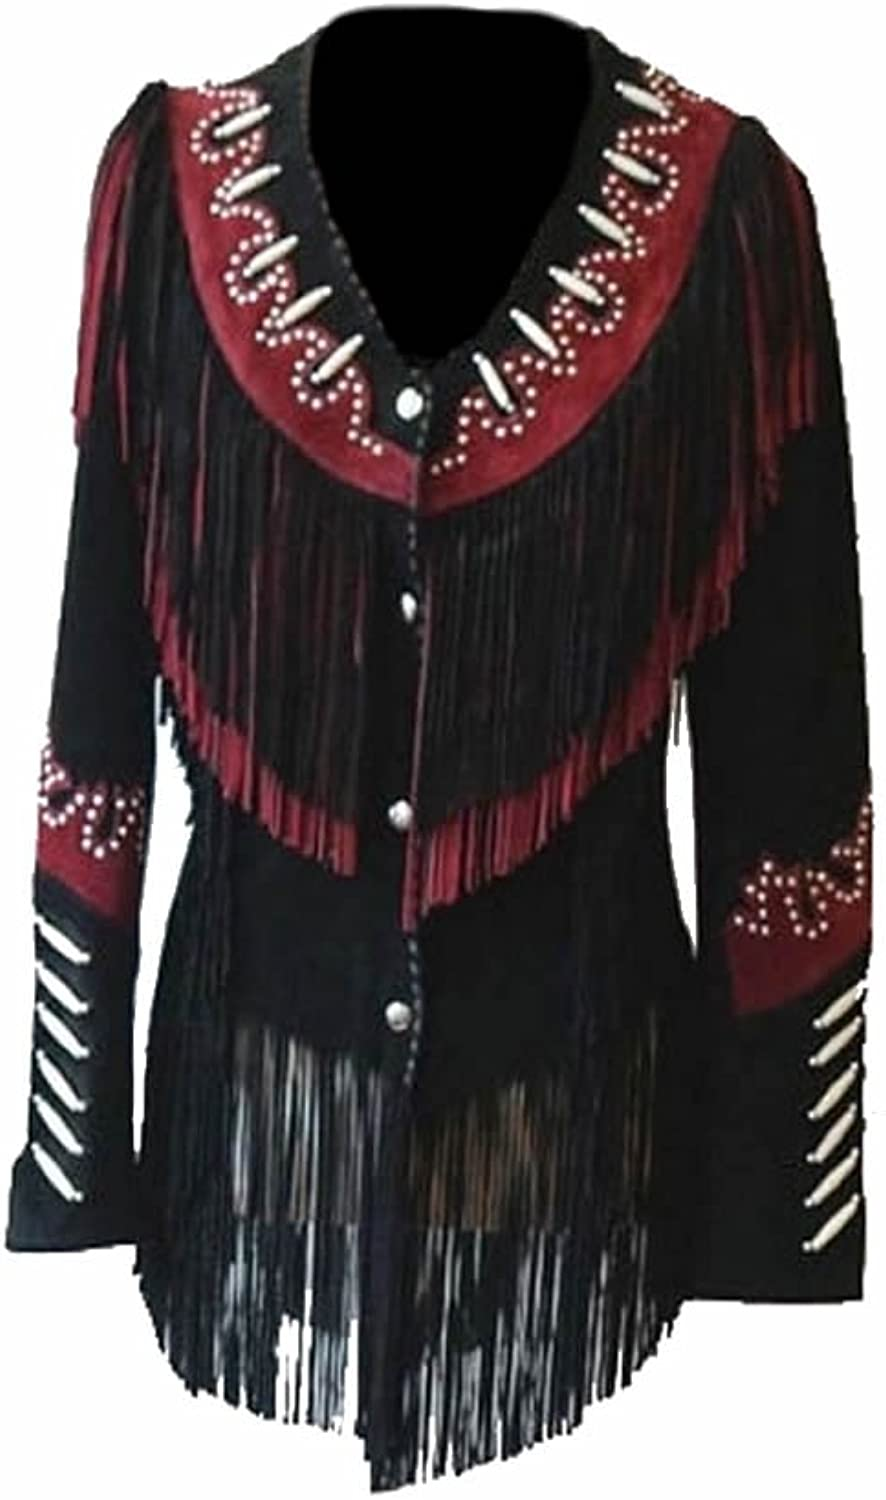 Classyak Women's Western Cowgirl Leather Jacket with Fringes, Beads & Bones